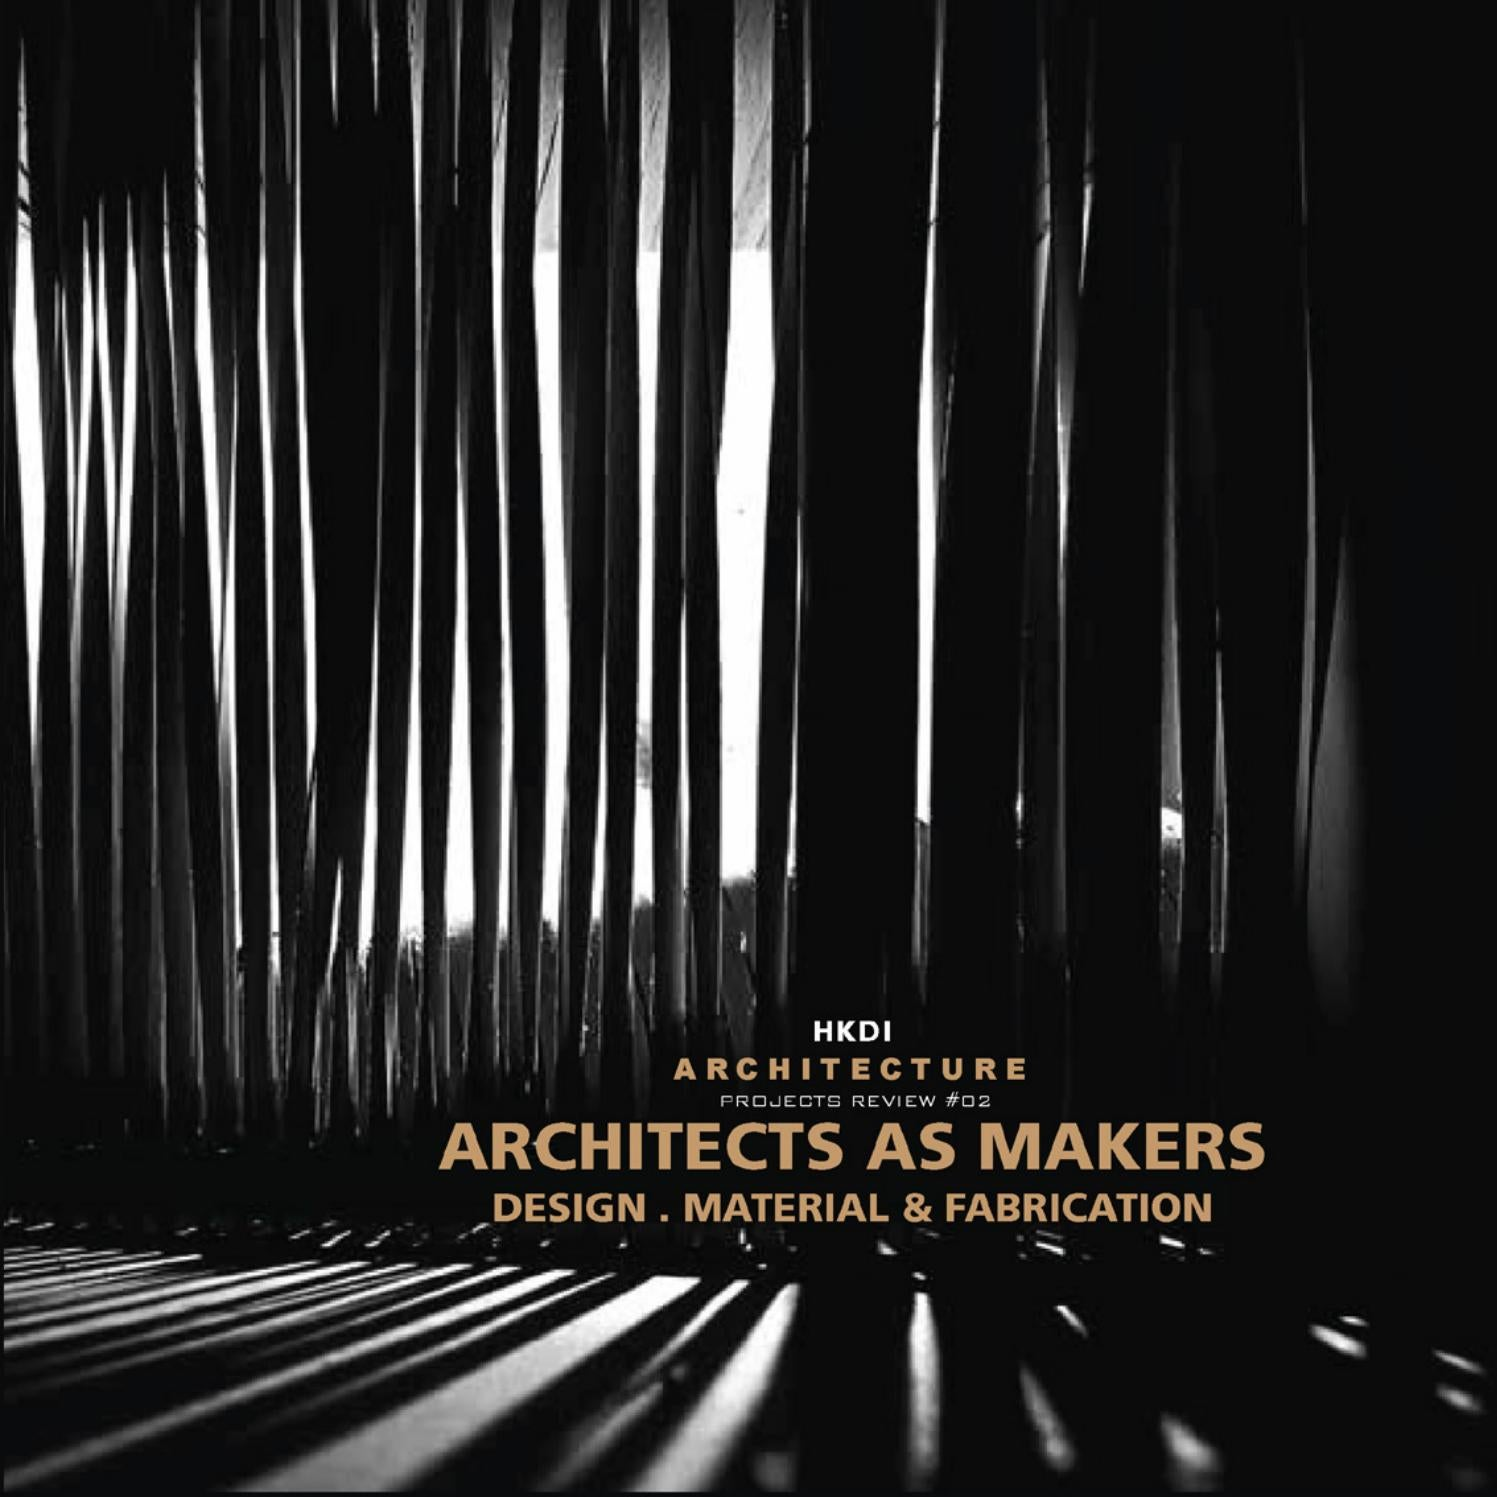 Architects As Makers By DIARC HKDI X UOL Issuu Simple Architectural Association Visiting Schoolstuttgart Ilek 18 29 July 2016